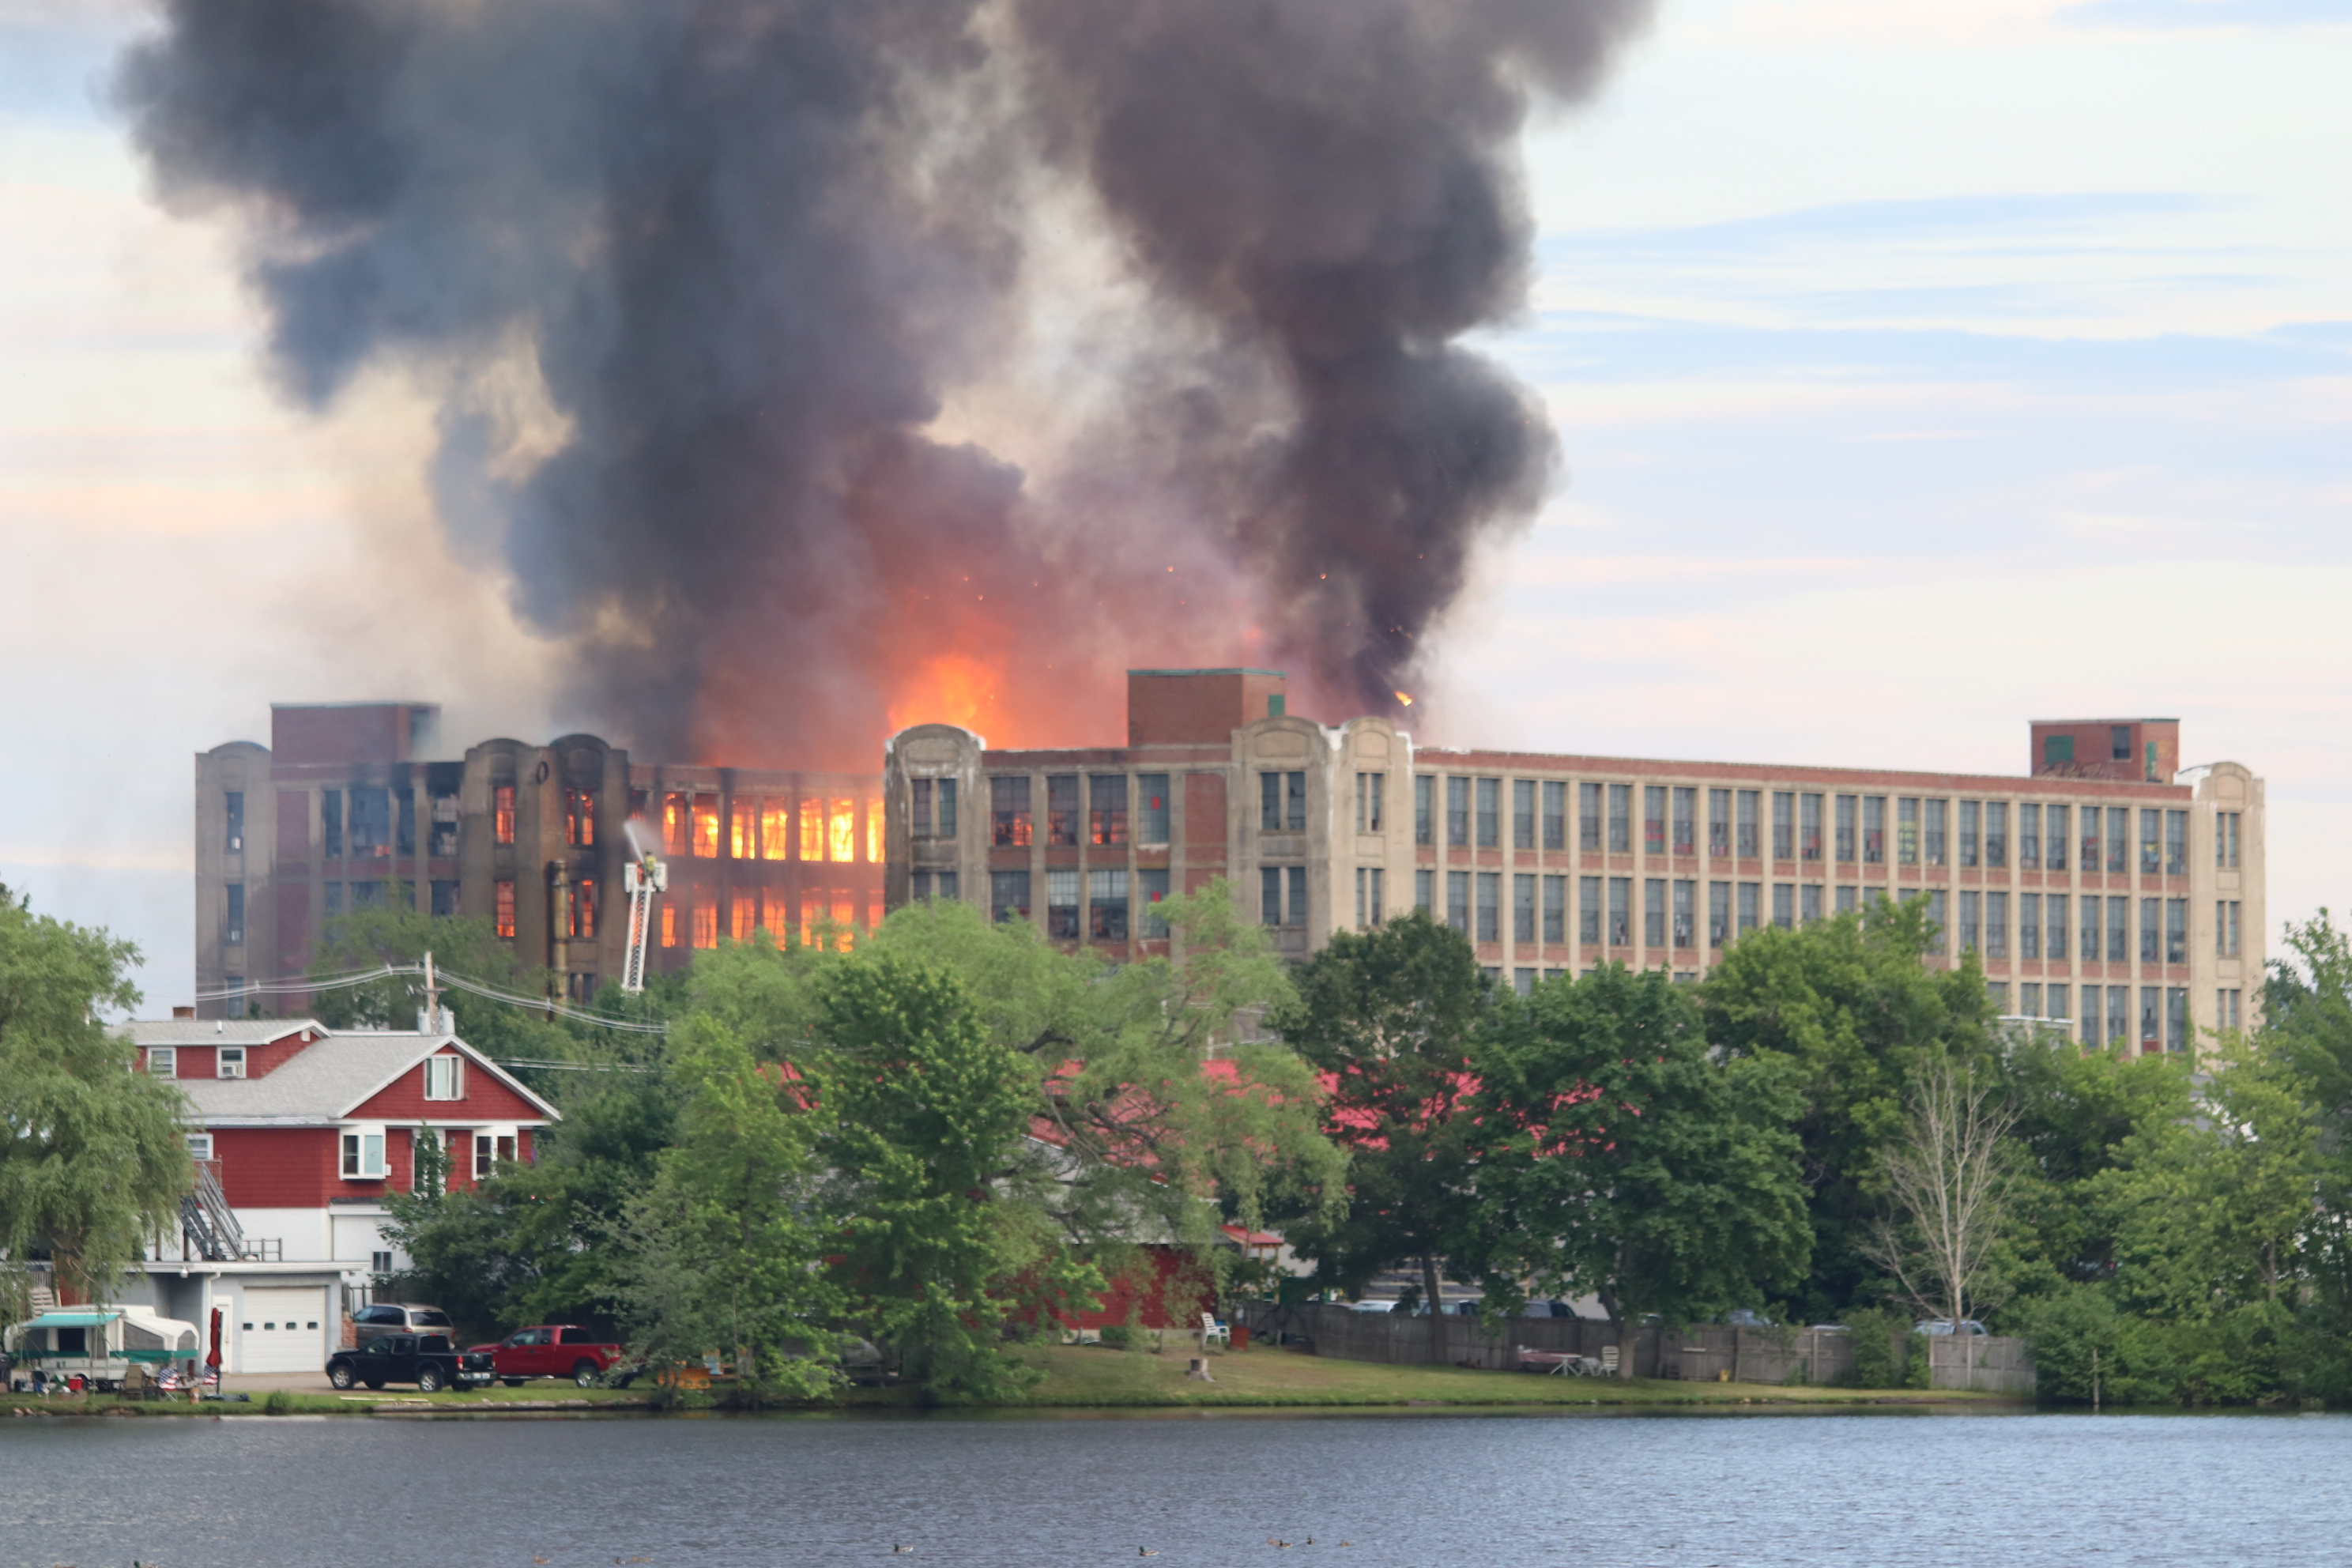 The three boys charged with arson in connection with the Stenton Trust mill fire June 23 will undergo evaluations before their next court appearances in October, a judge said during their appearances on Thursday. TAMMY WELLS/Journal Tribune file photo